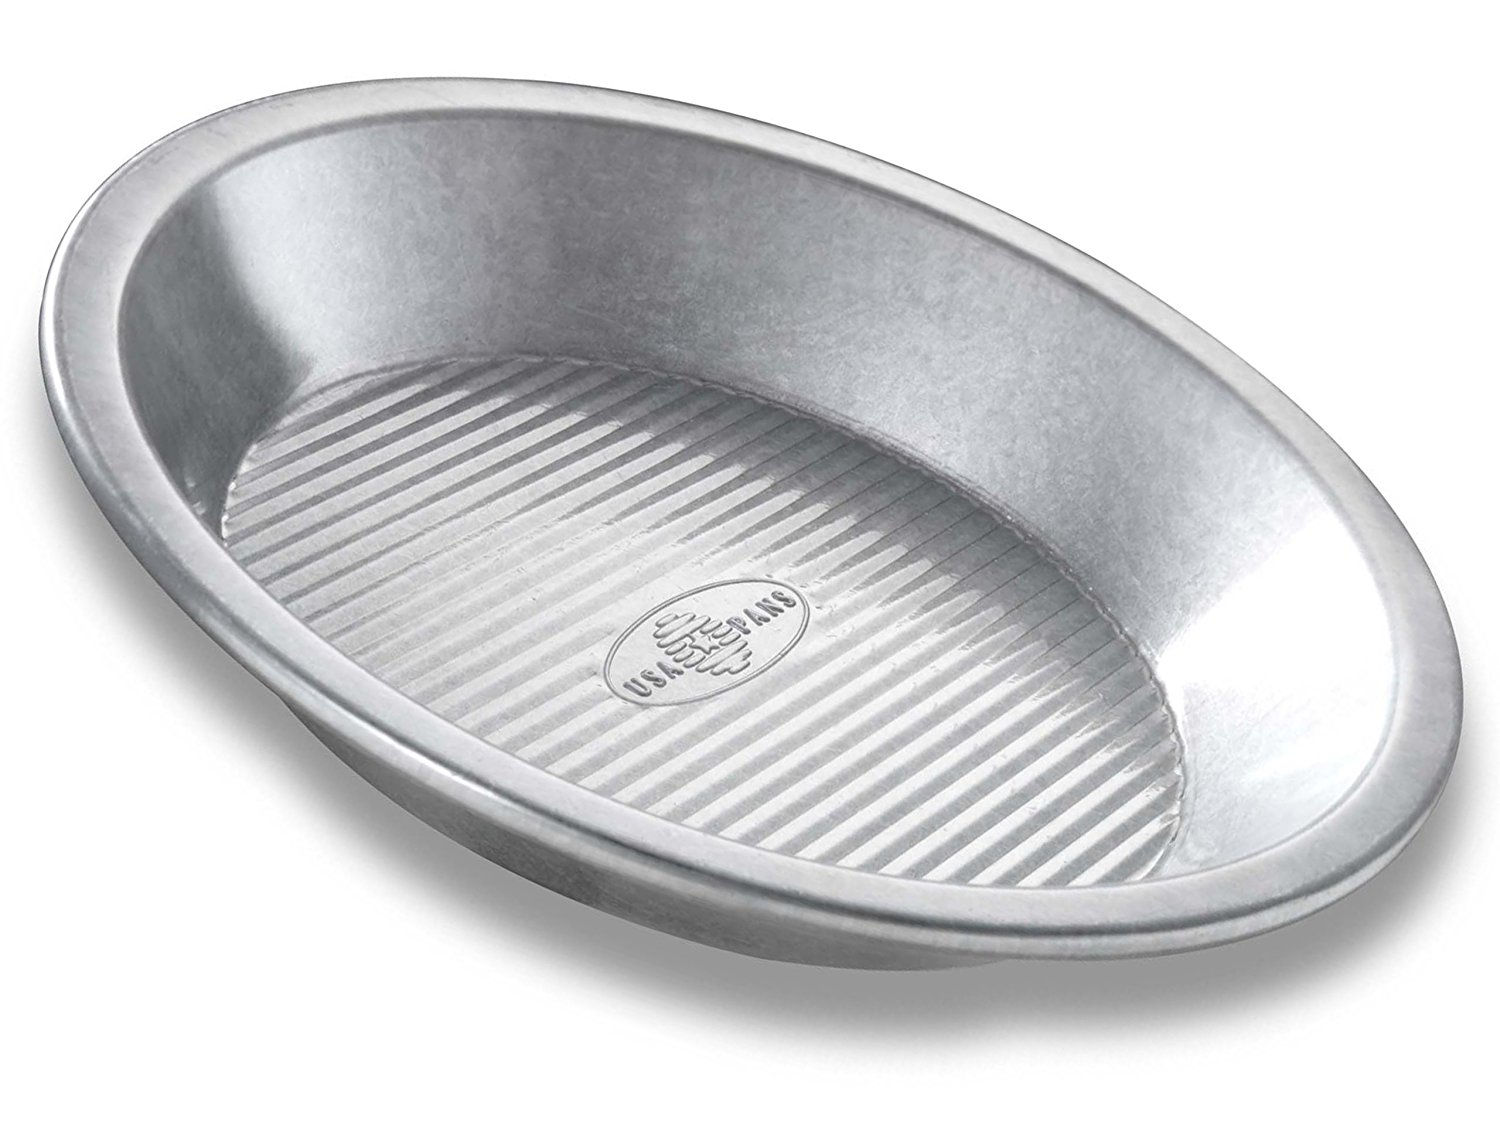 Bakeware Aluminized Steel Pie Pan, 9-Inch 9 Inch, Ship from USA,Brand USA Pan by